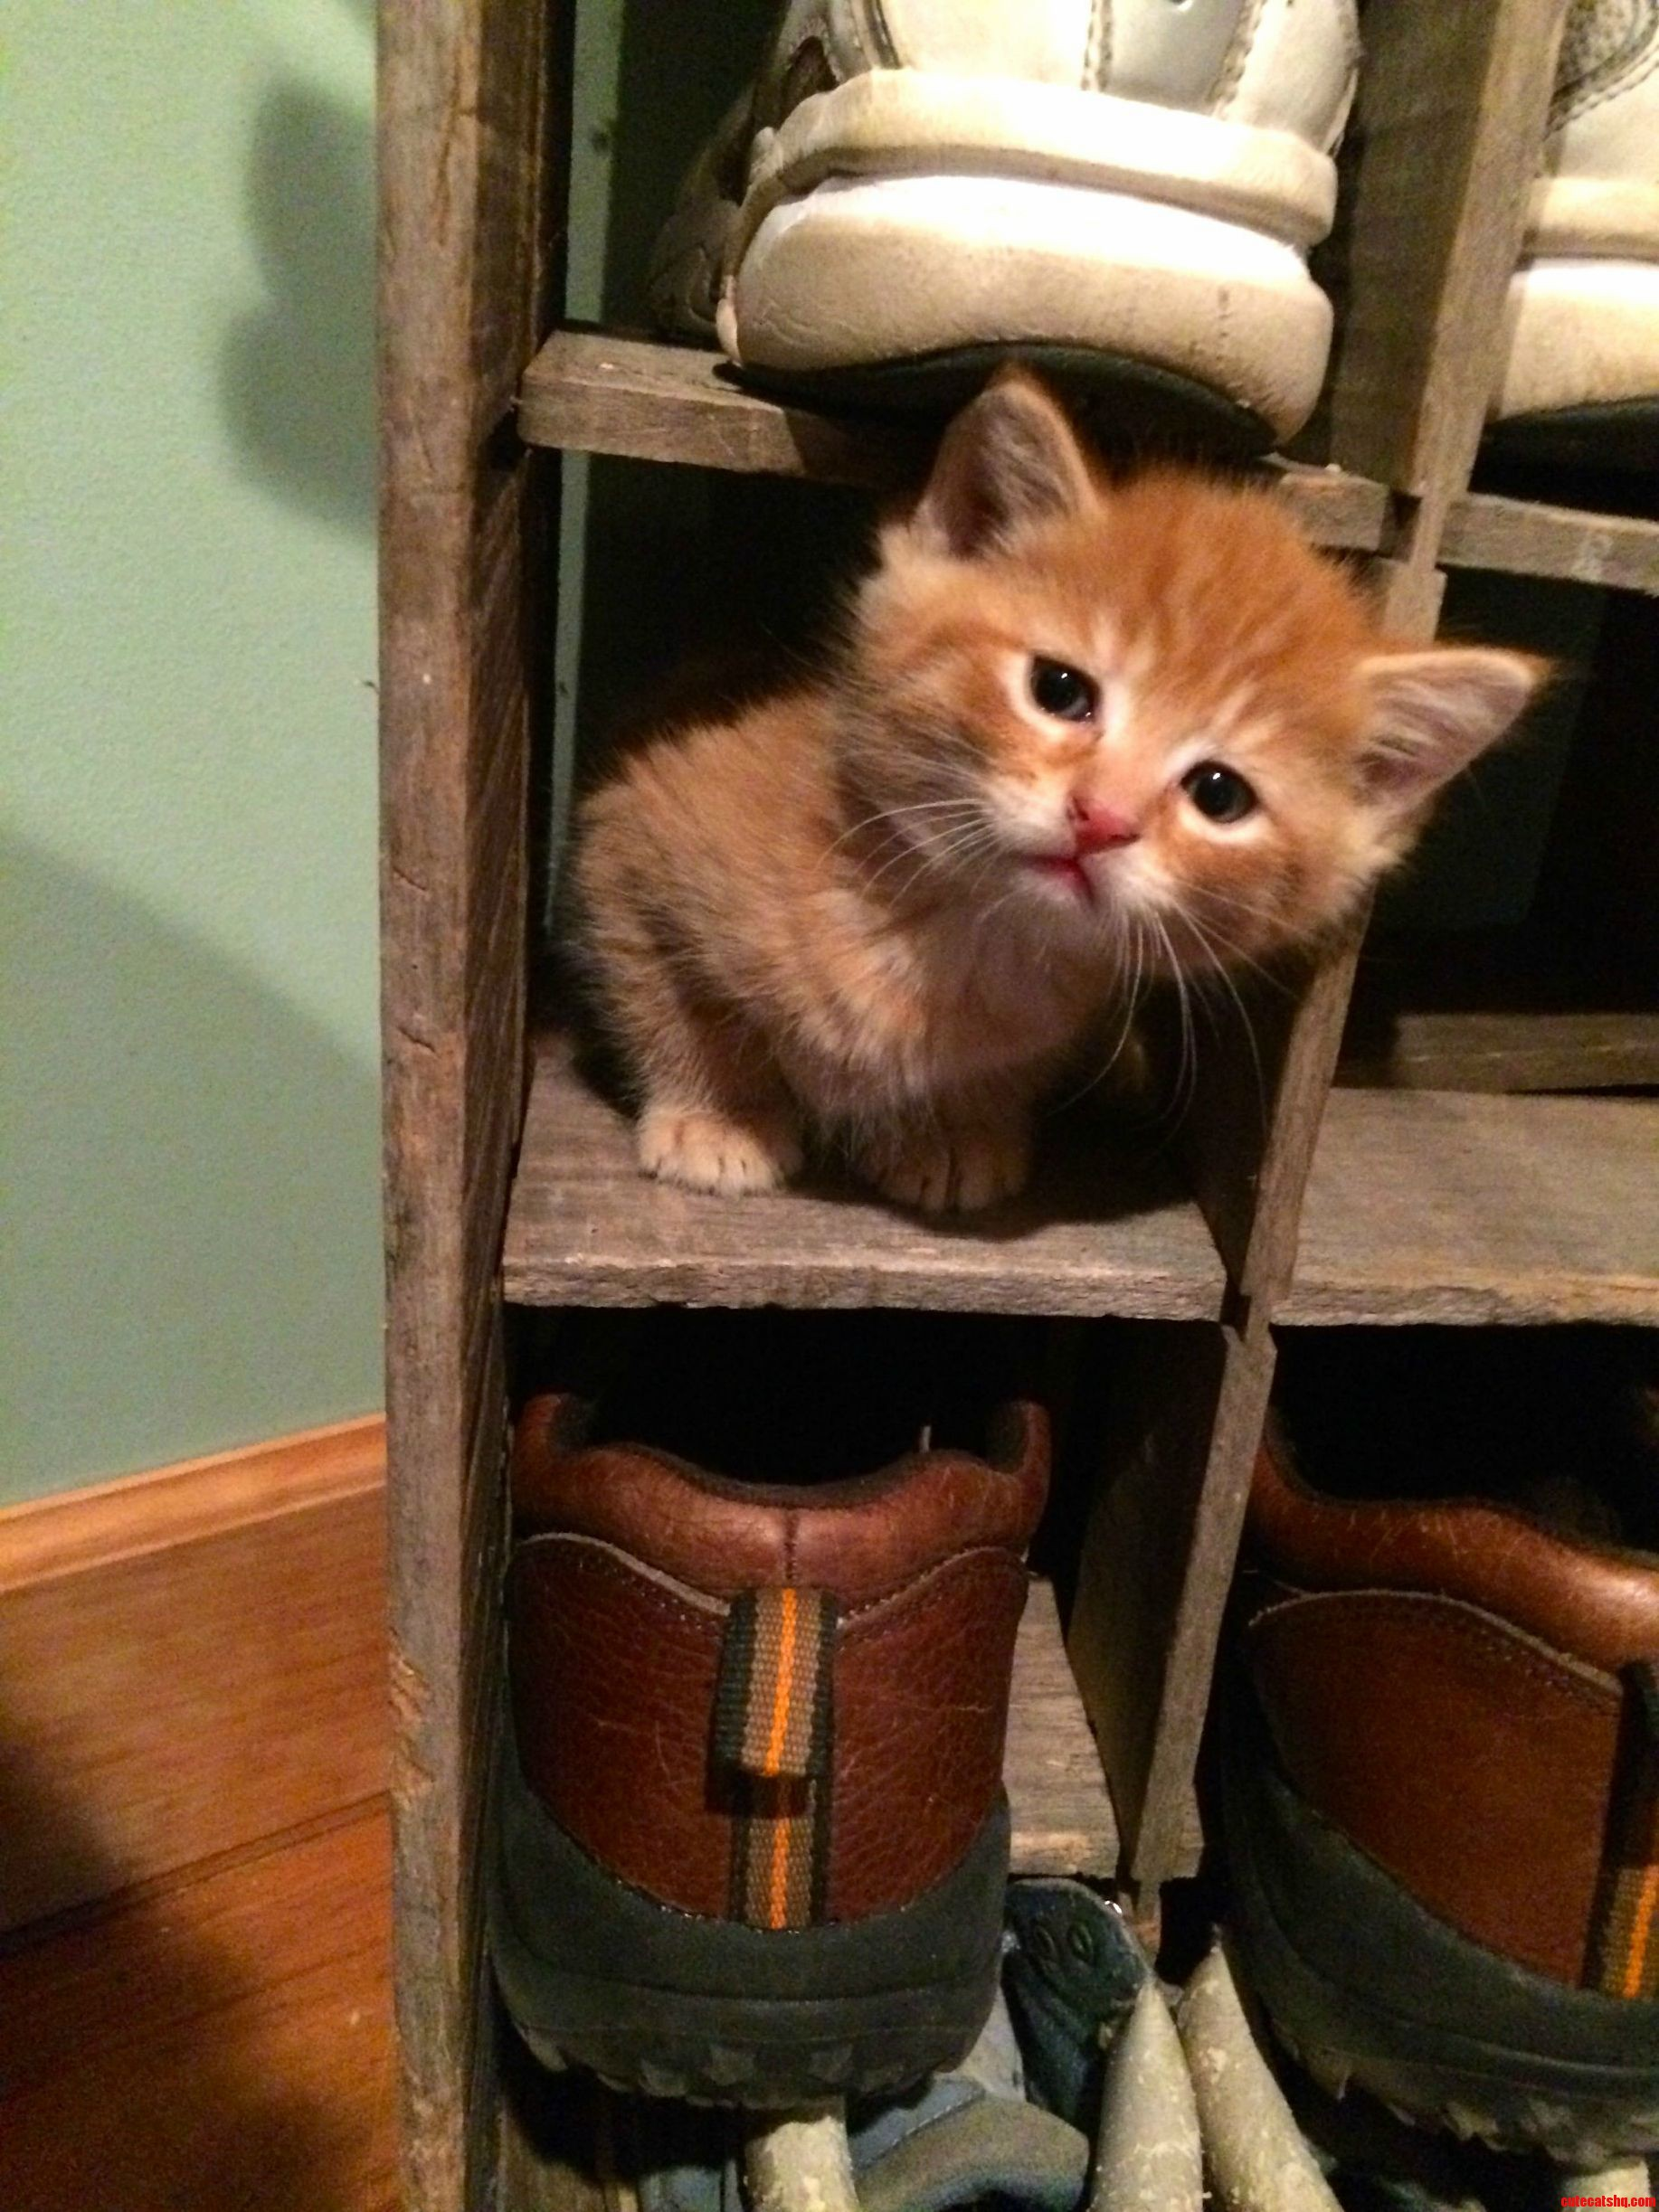 Exploring A New Cubby Hole